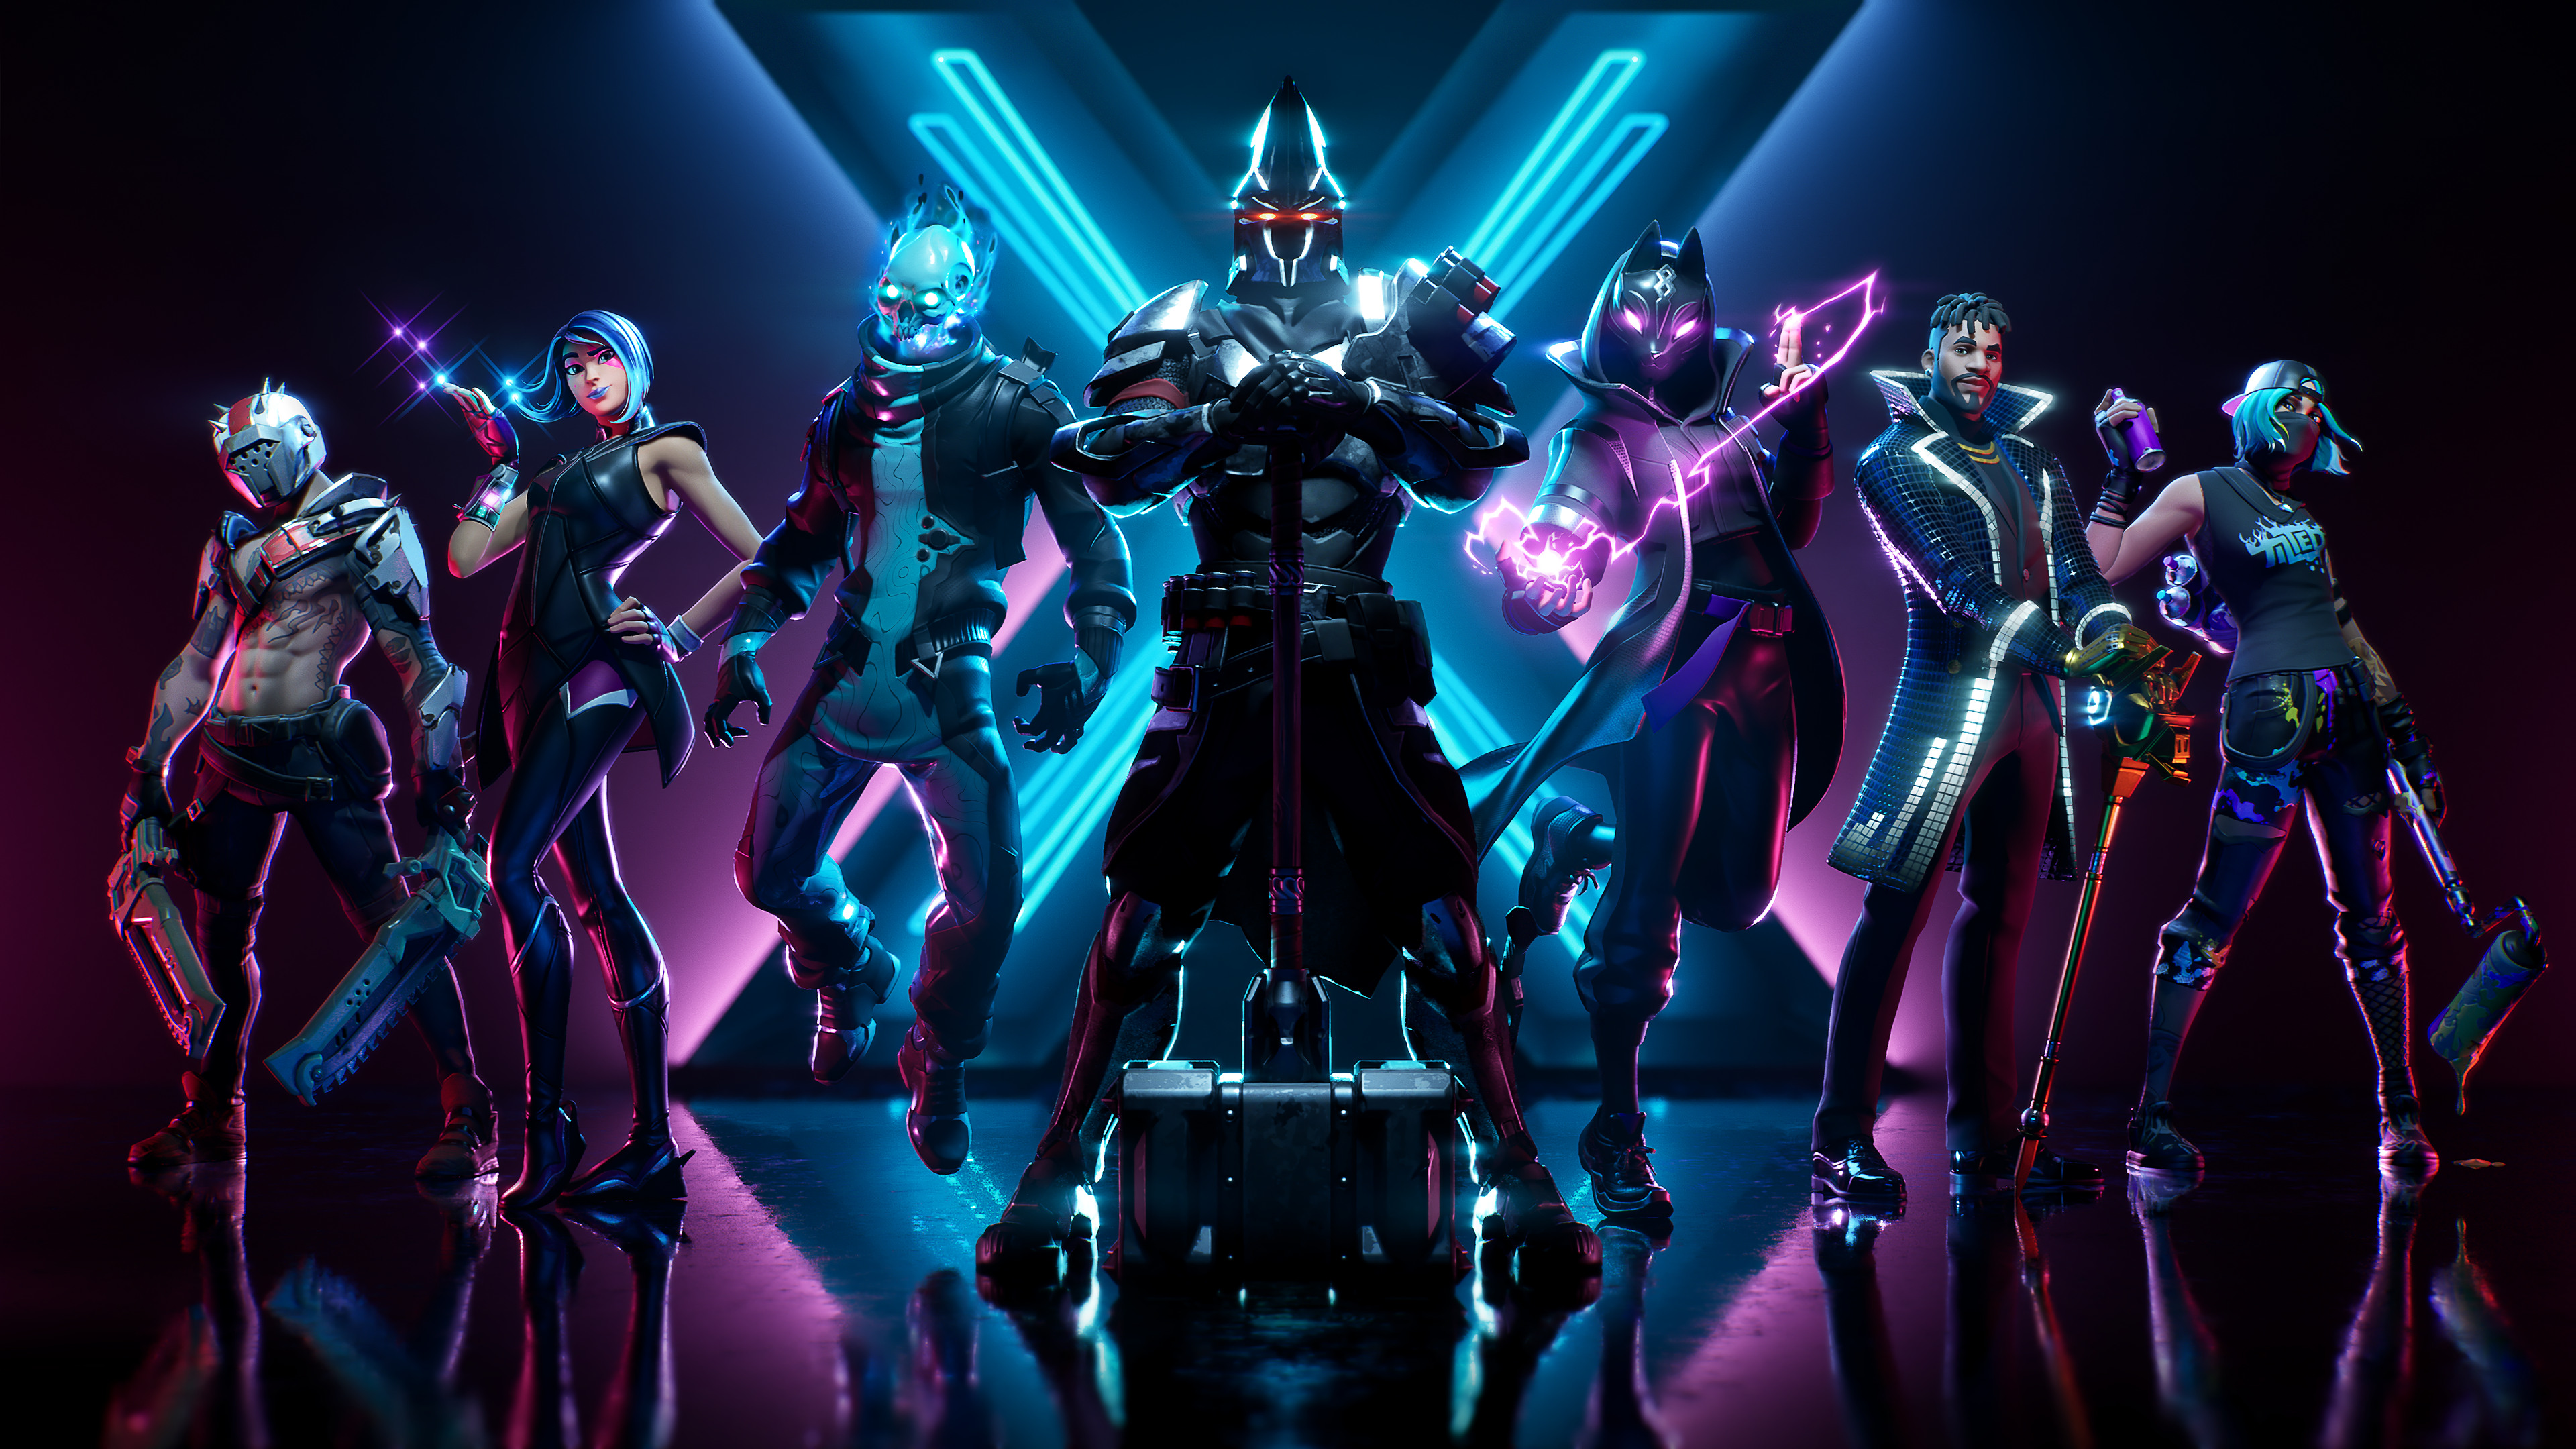 Free Download Fortnite X All Battle Pass Skins Outfits Season 10 8k Wallpaper 359 3840x2160 For Your Desktop Mobile Tablet Explore 19 Fortnite Desktop Full Screen Wallpapers Fortnite Desktop